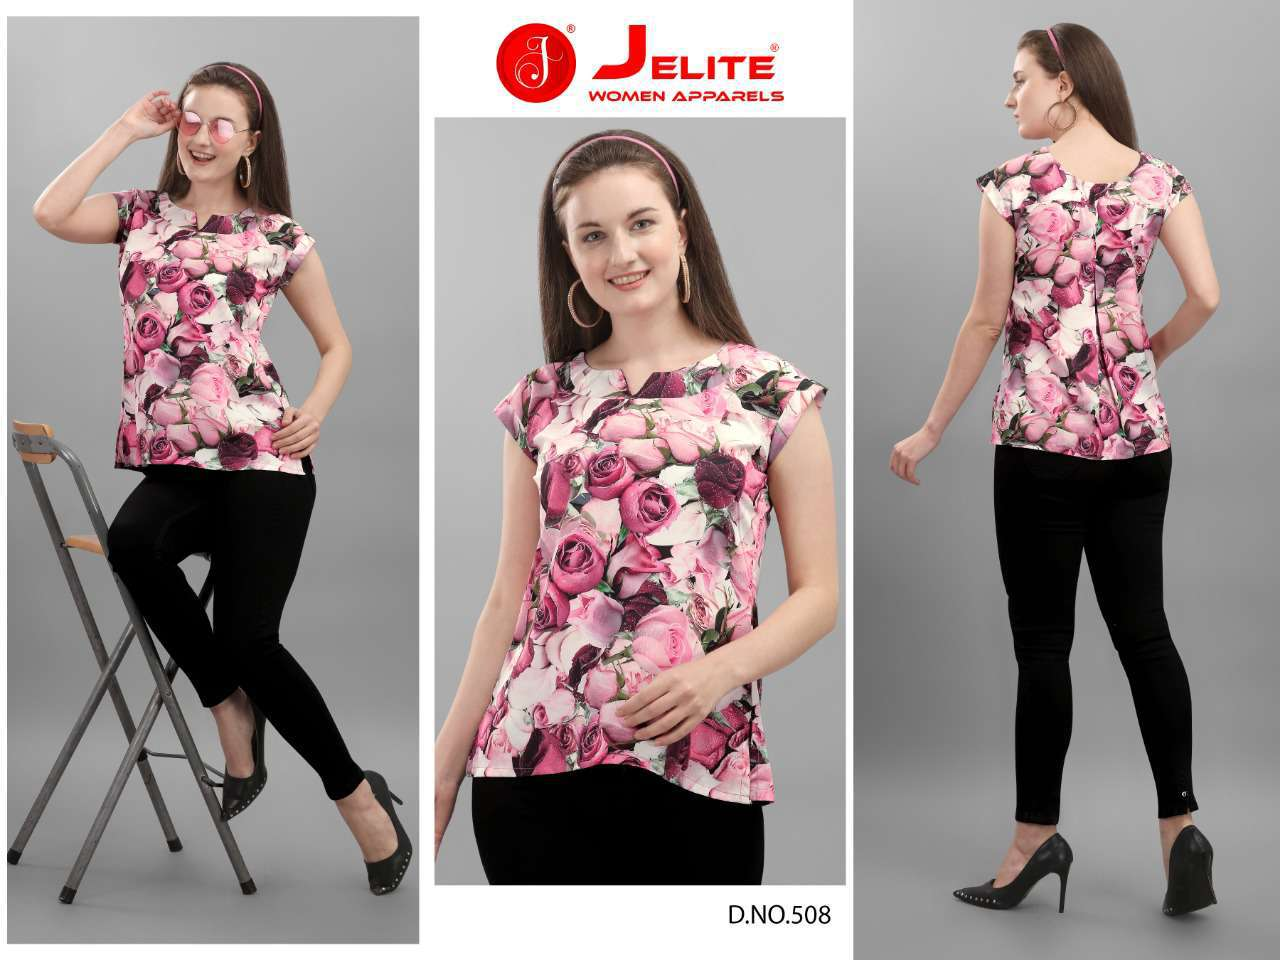 Jelite Orchid Tops Wholesale Catalog 8 Pcs 8 - Jelite Orchid Tops Wholesale Catalog 8 Pcs